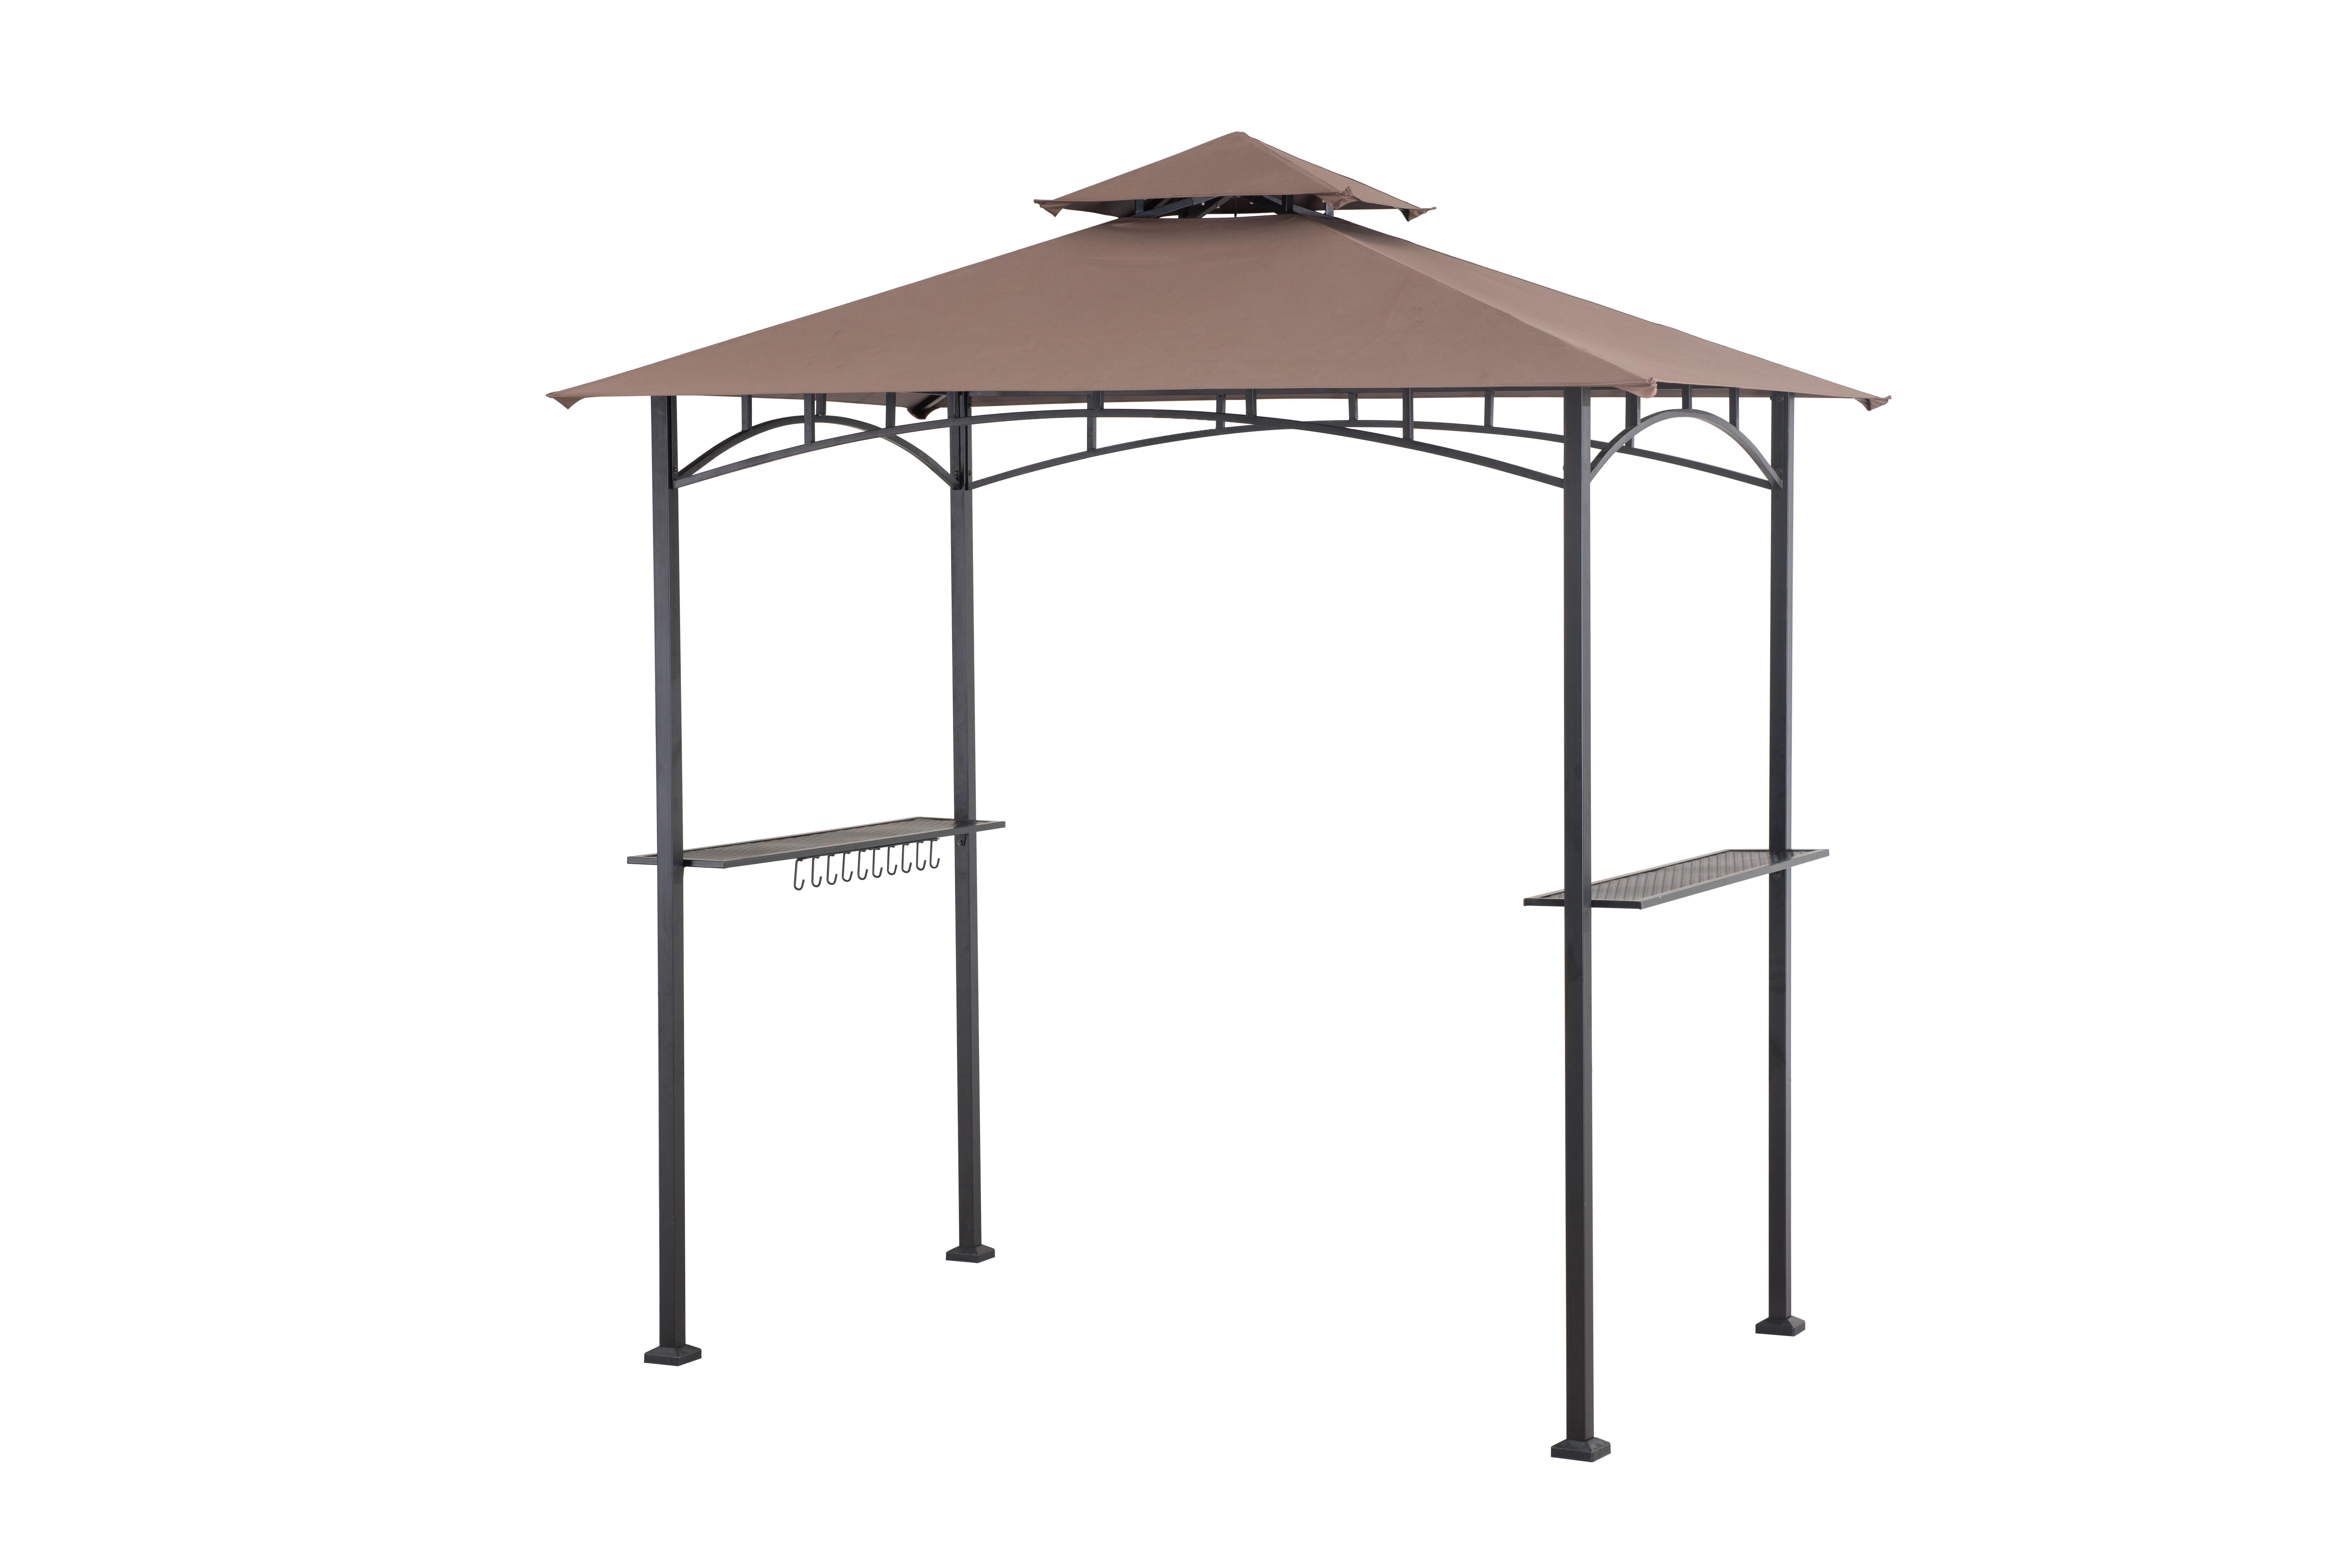 Sunjoy 110103014 Grill Gazebo Brown: Amazon.ca: Patio